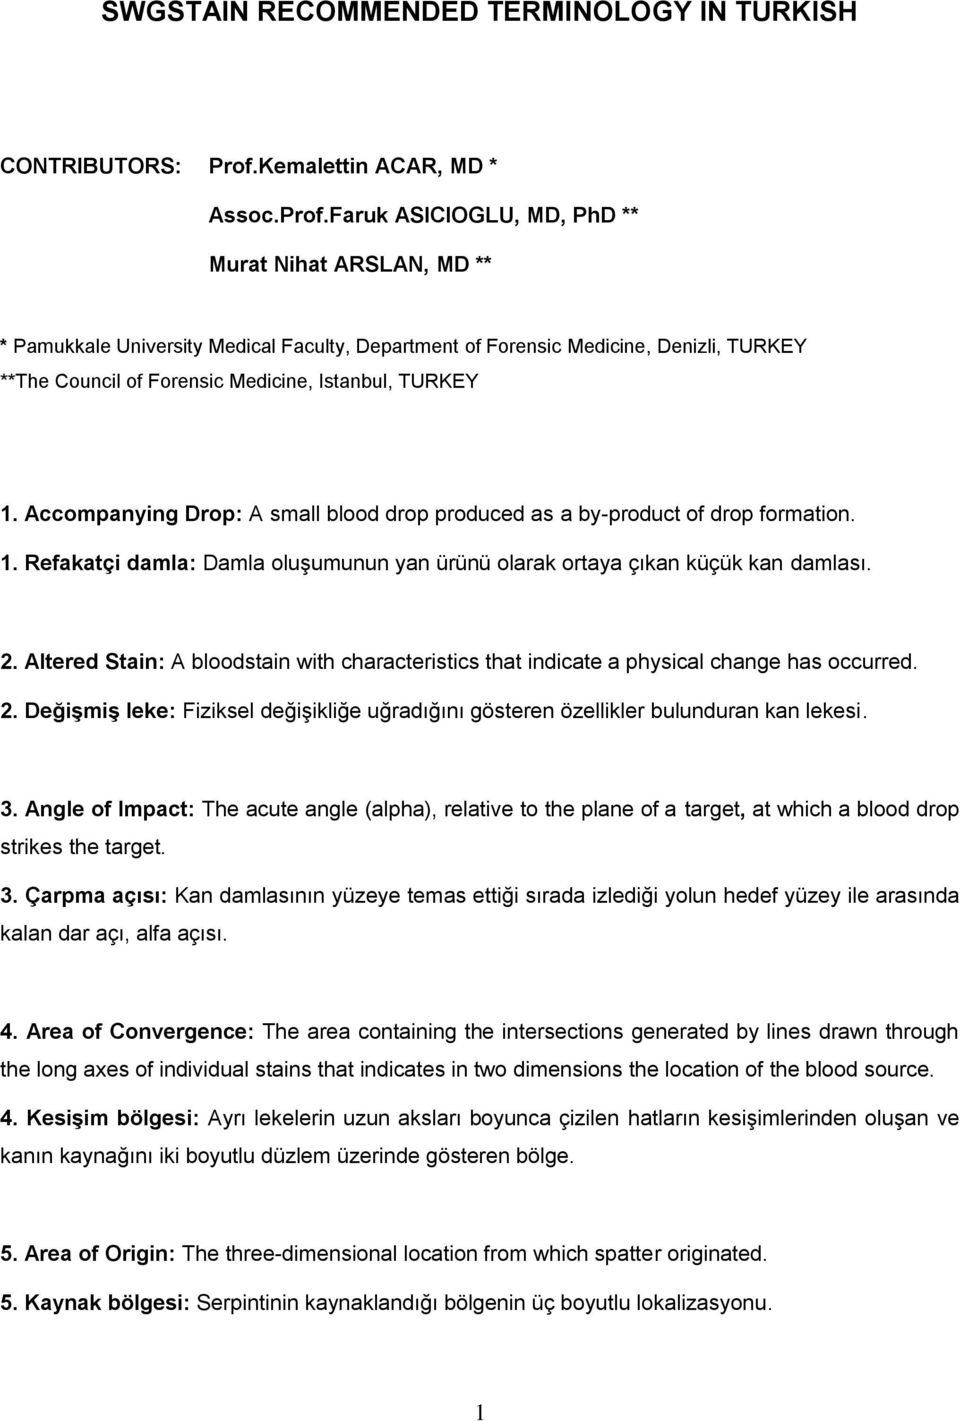 Faruk ASICIOGLU, MD, PhD ** Murat Nihat ARSLAN, MD ** * Pamukkale University Medical Faculty, Department of Forensic Medicine, Denizli, TURKEY **The Council of Forensic Medicine, Istanbul, TURKEY 1.